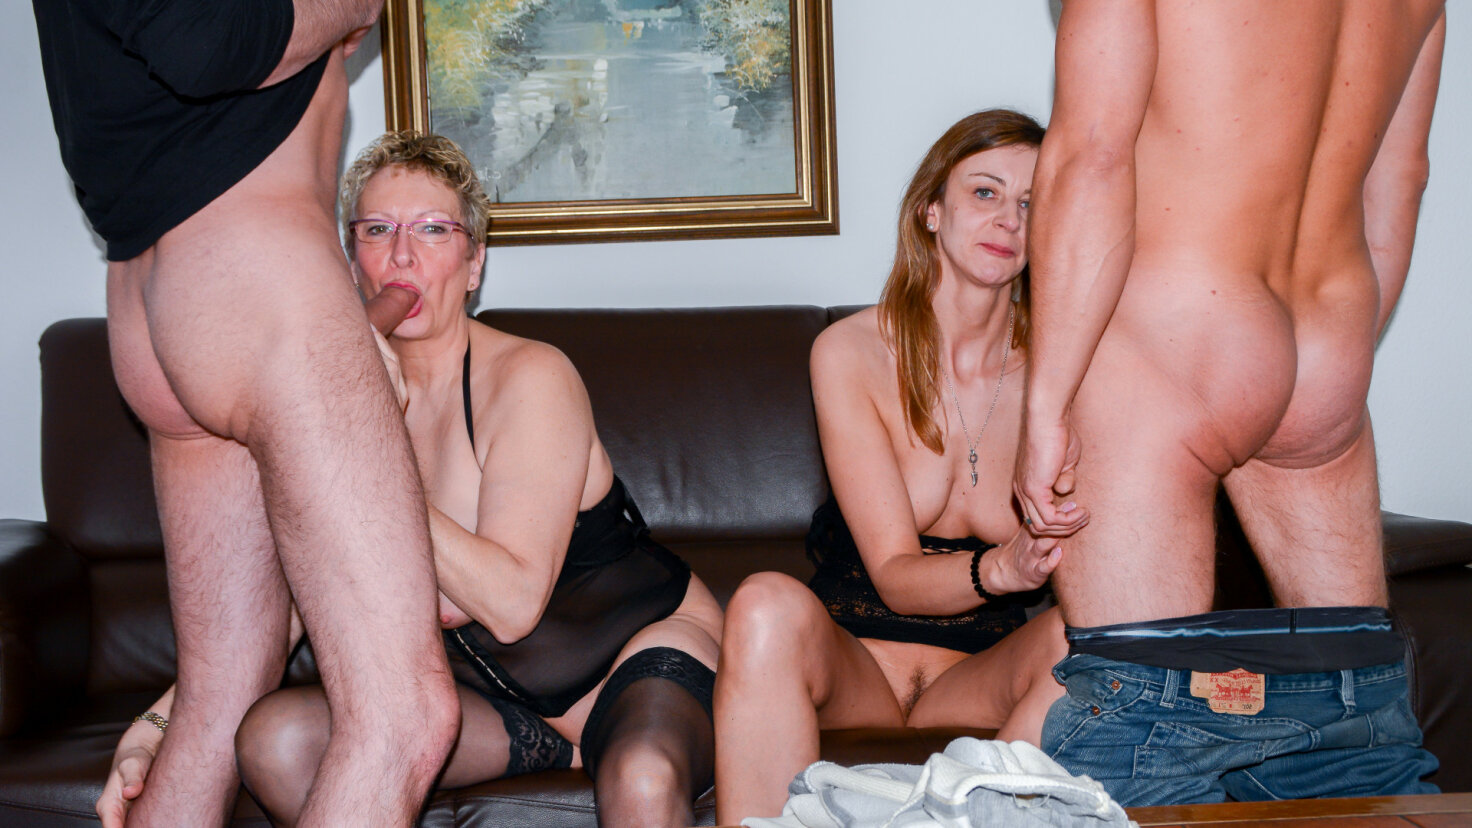 Mature German ladies go wild in hardcore swinger foursome